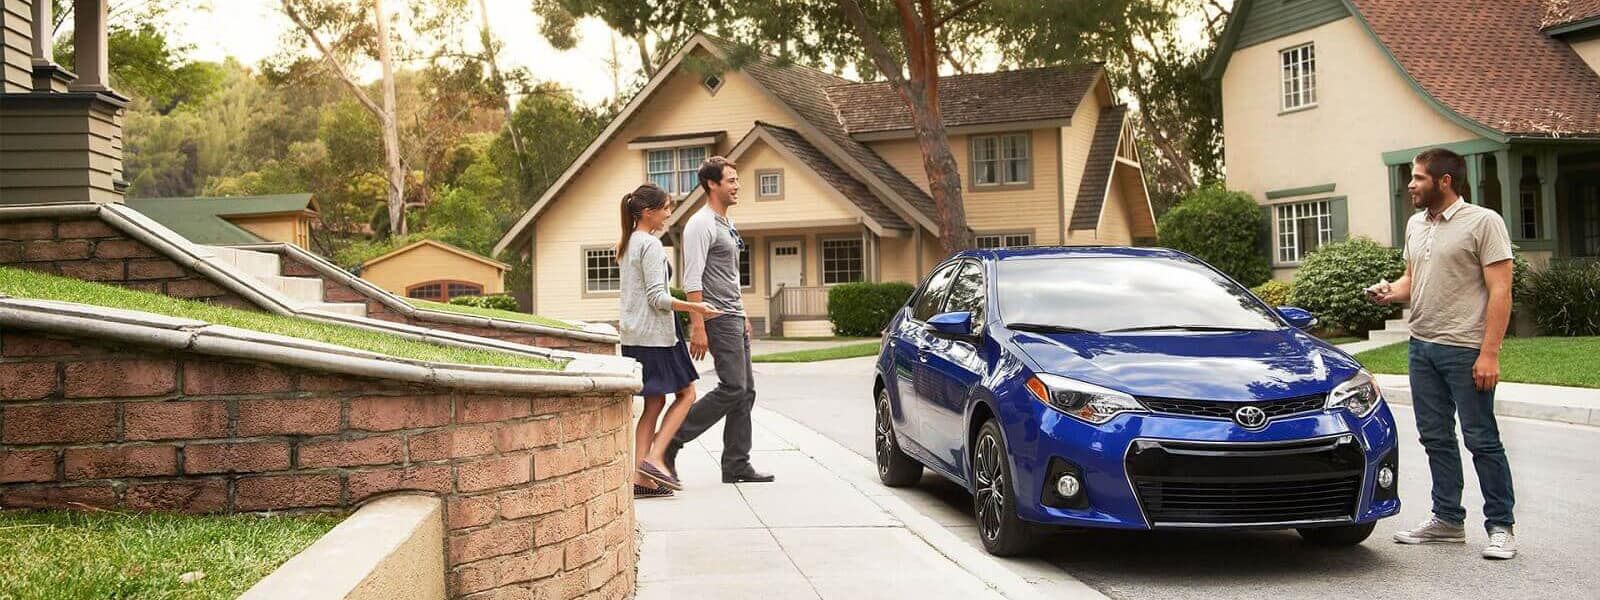 couple walks to Toyota Corolla while man is standing near driver's door